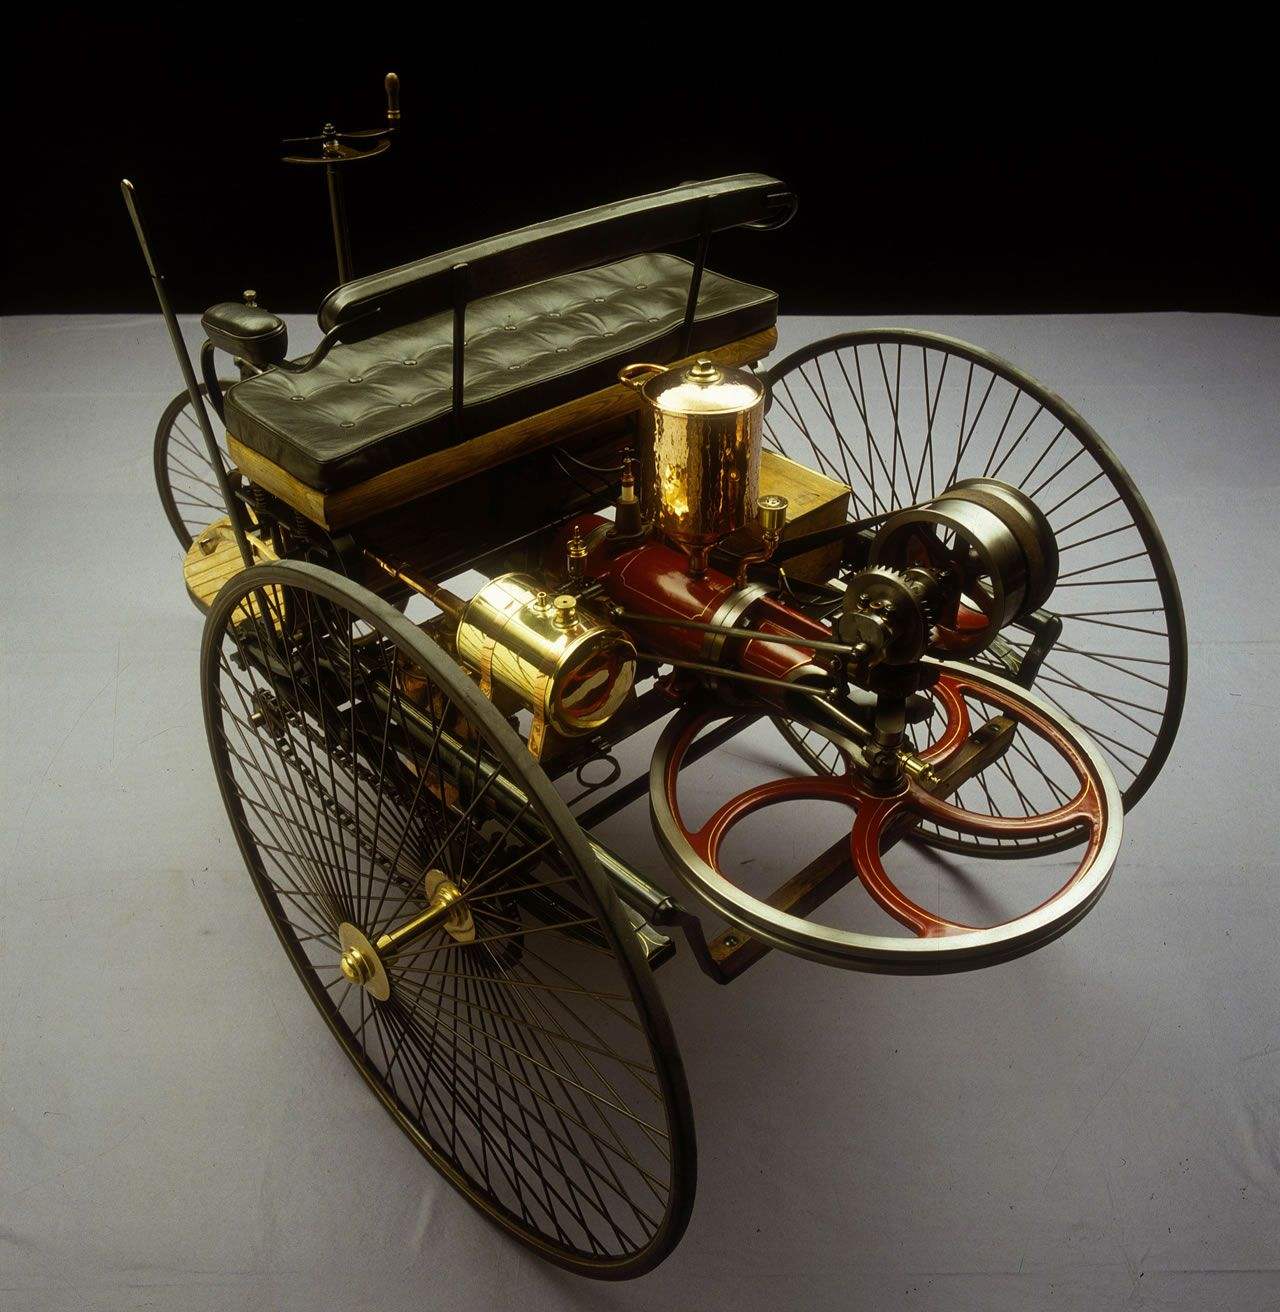 1885 Benz Patent Motorwagen This is considered to be the first ...